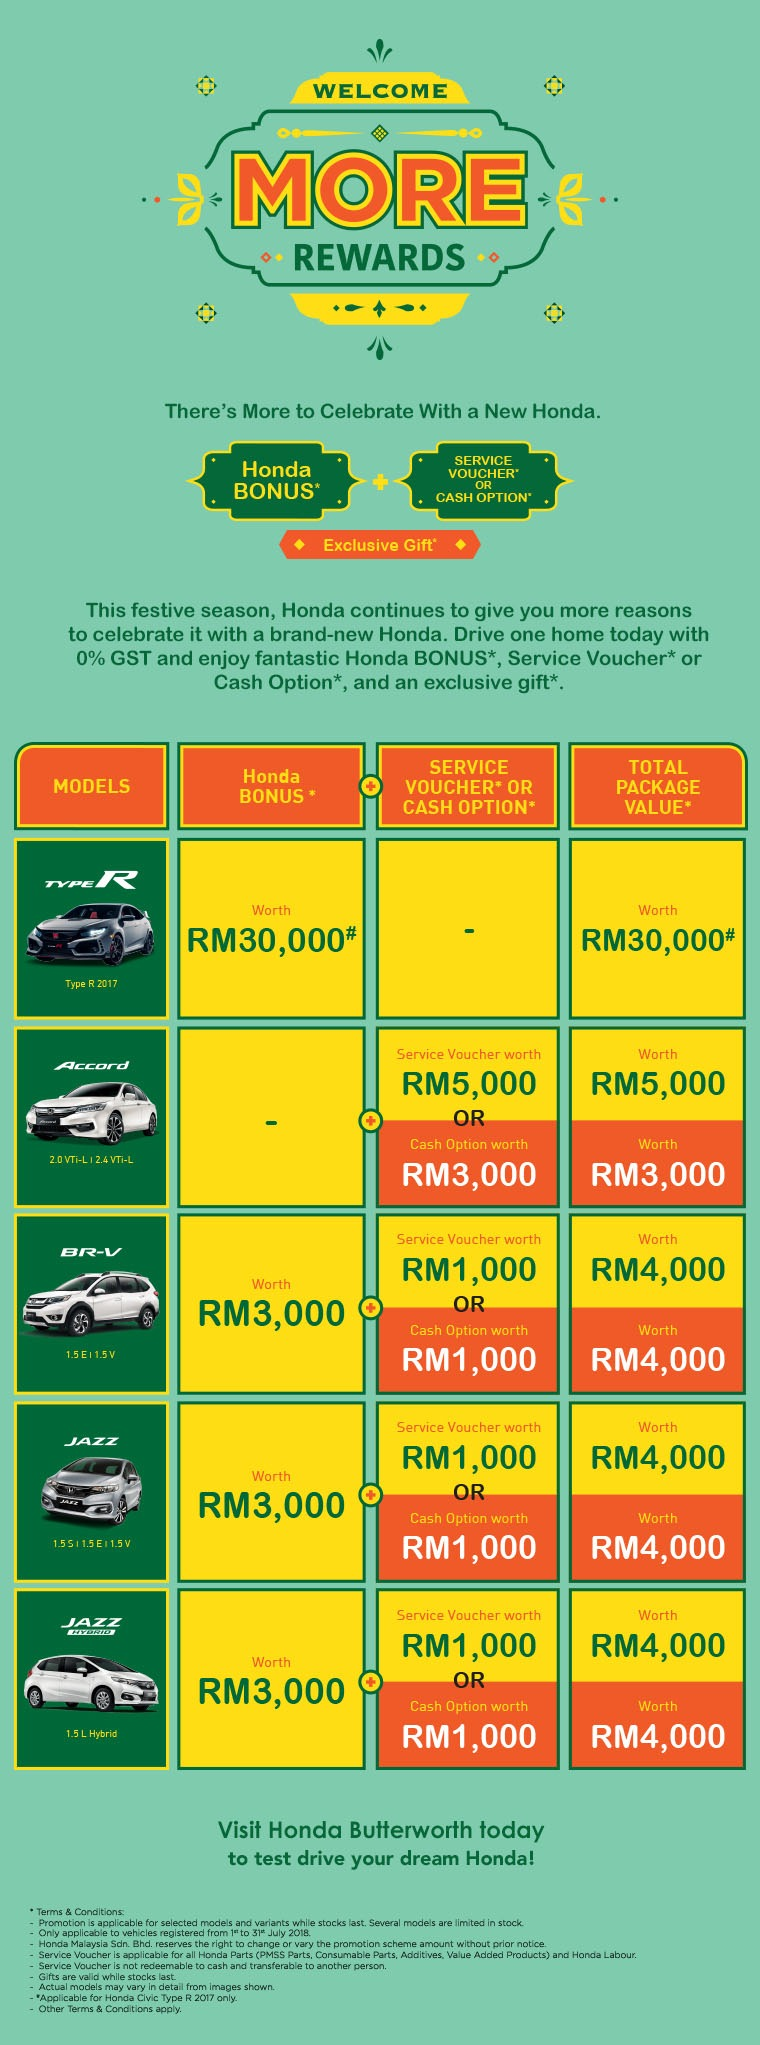 Honda welcome more rewards raya